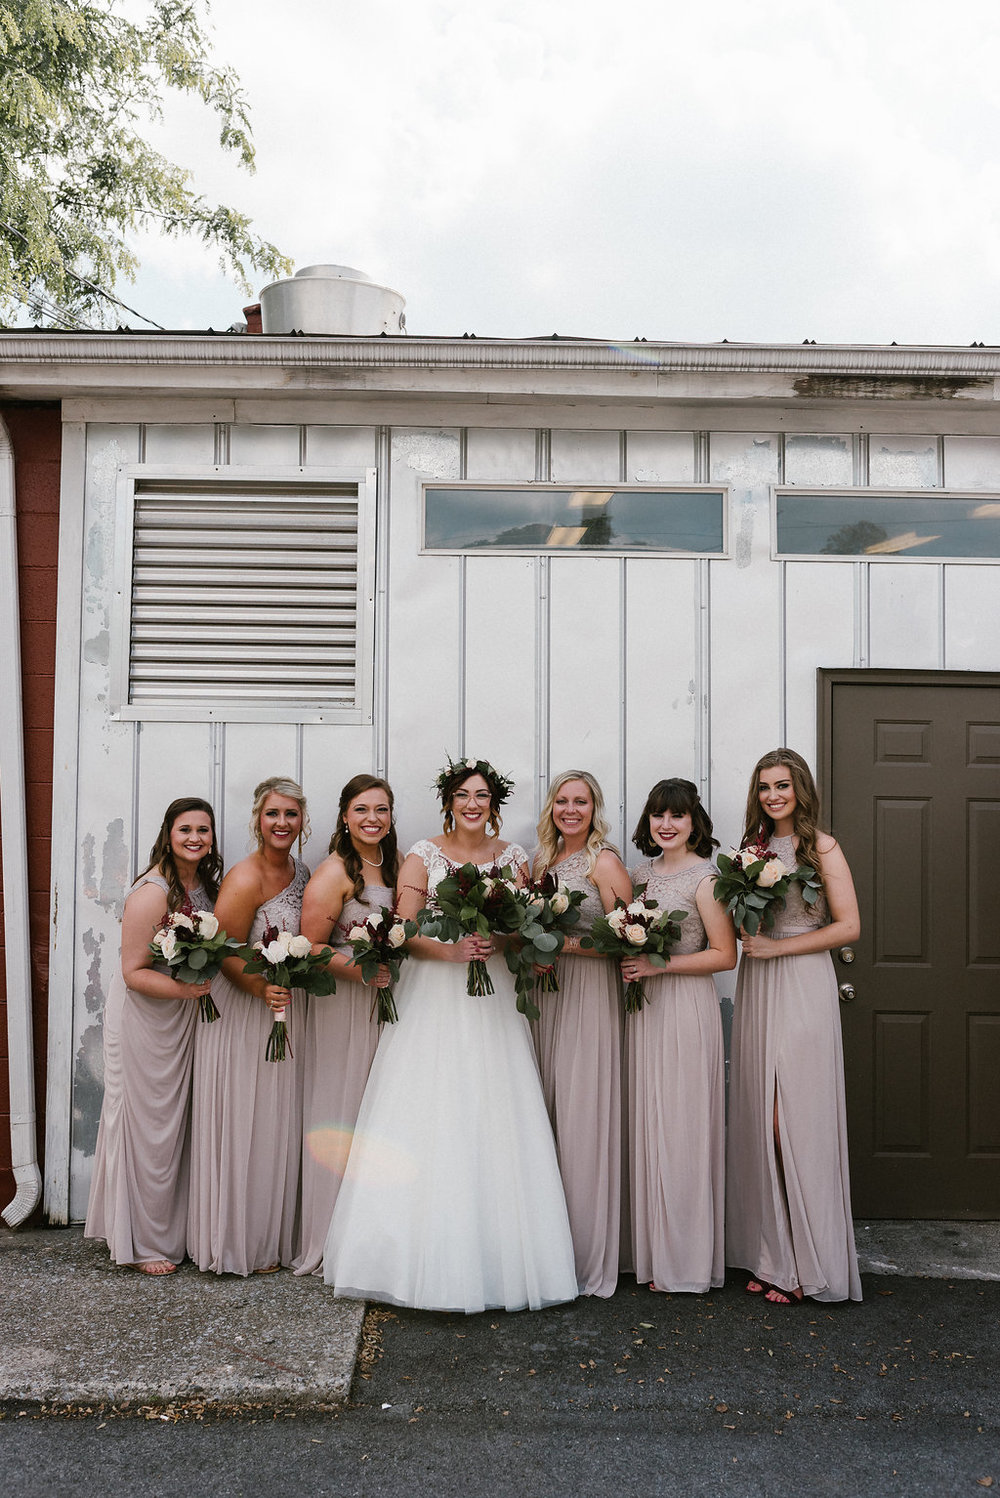 Standard Downtown Knoxville Wedding Venue Bridesmaids